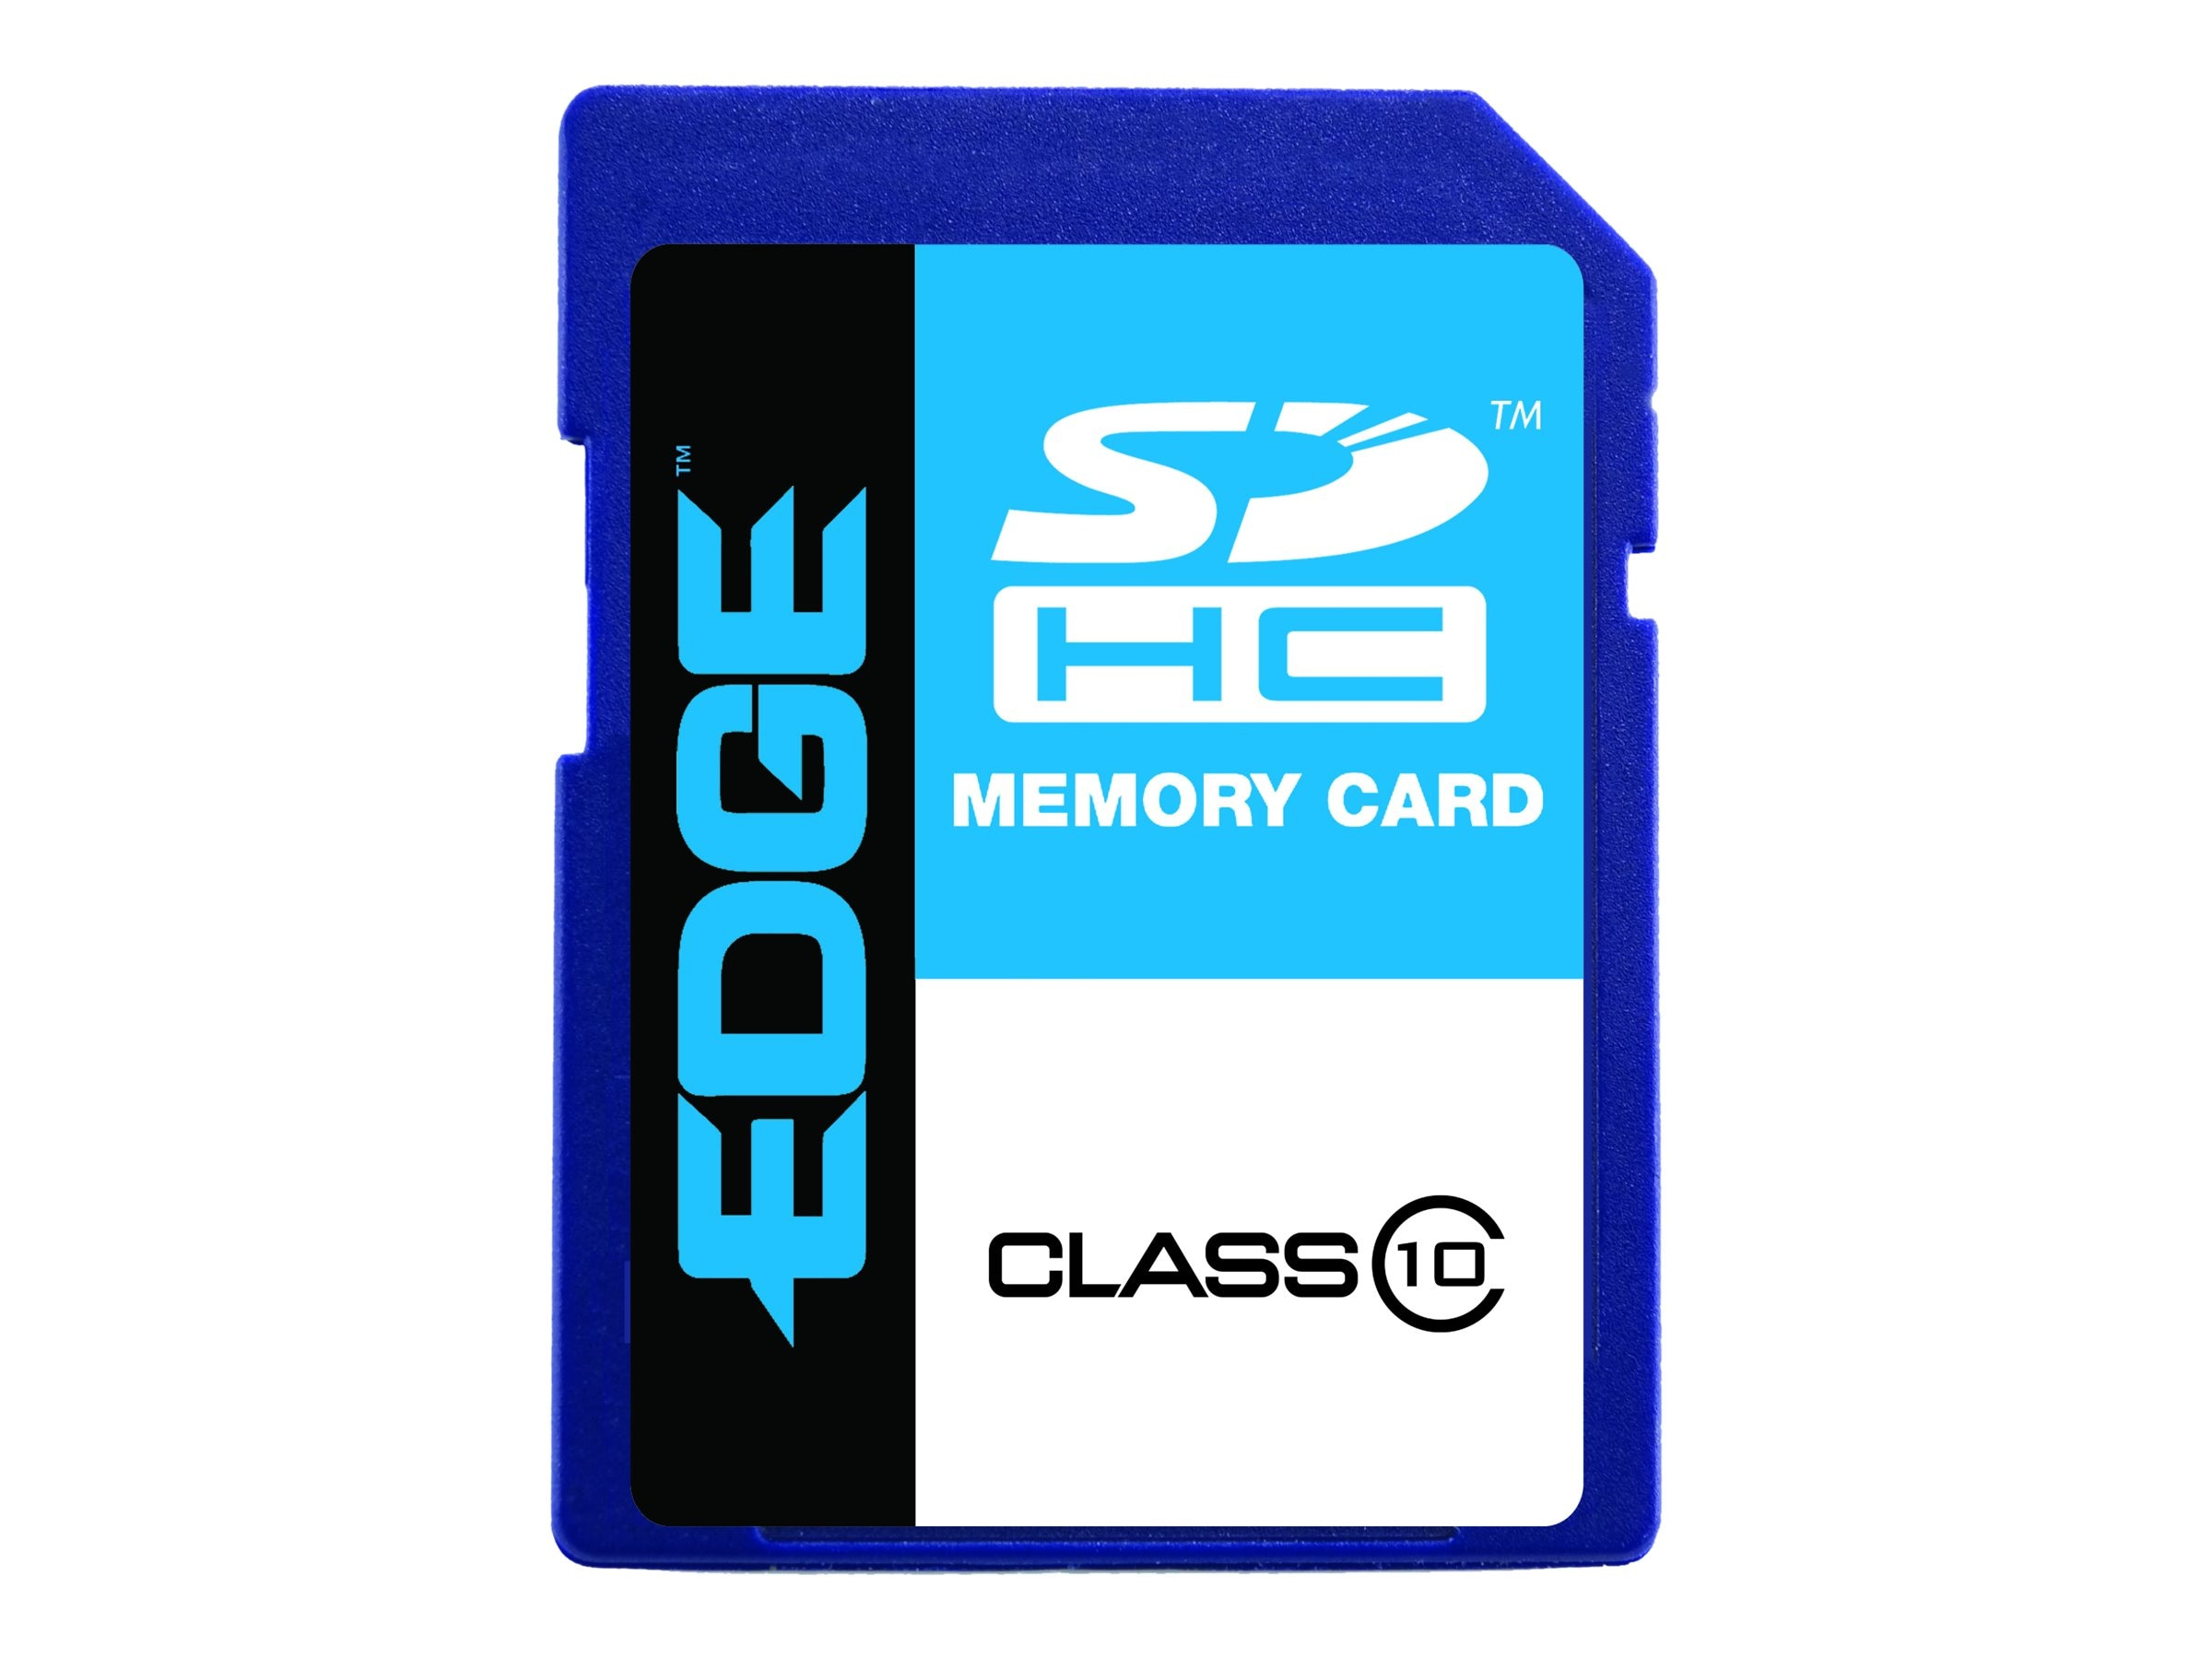 Edge 8GB ProShot SDHC Flash Memory Card, Class 10, PE225766